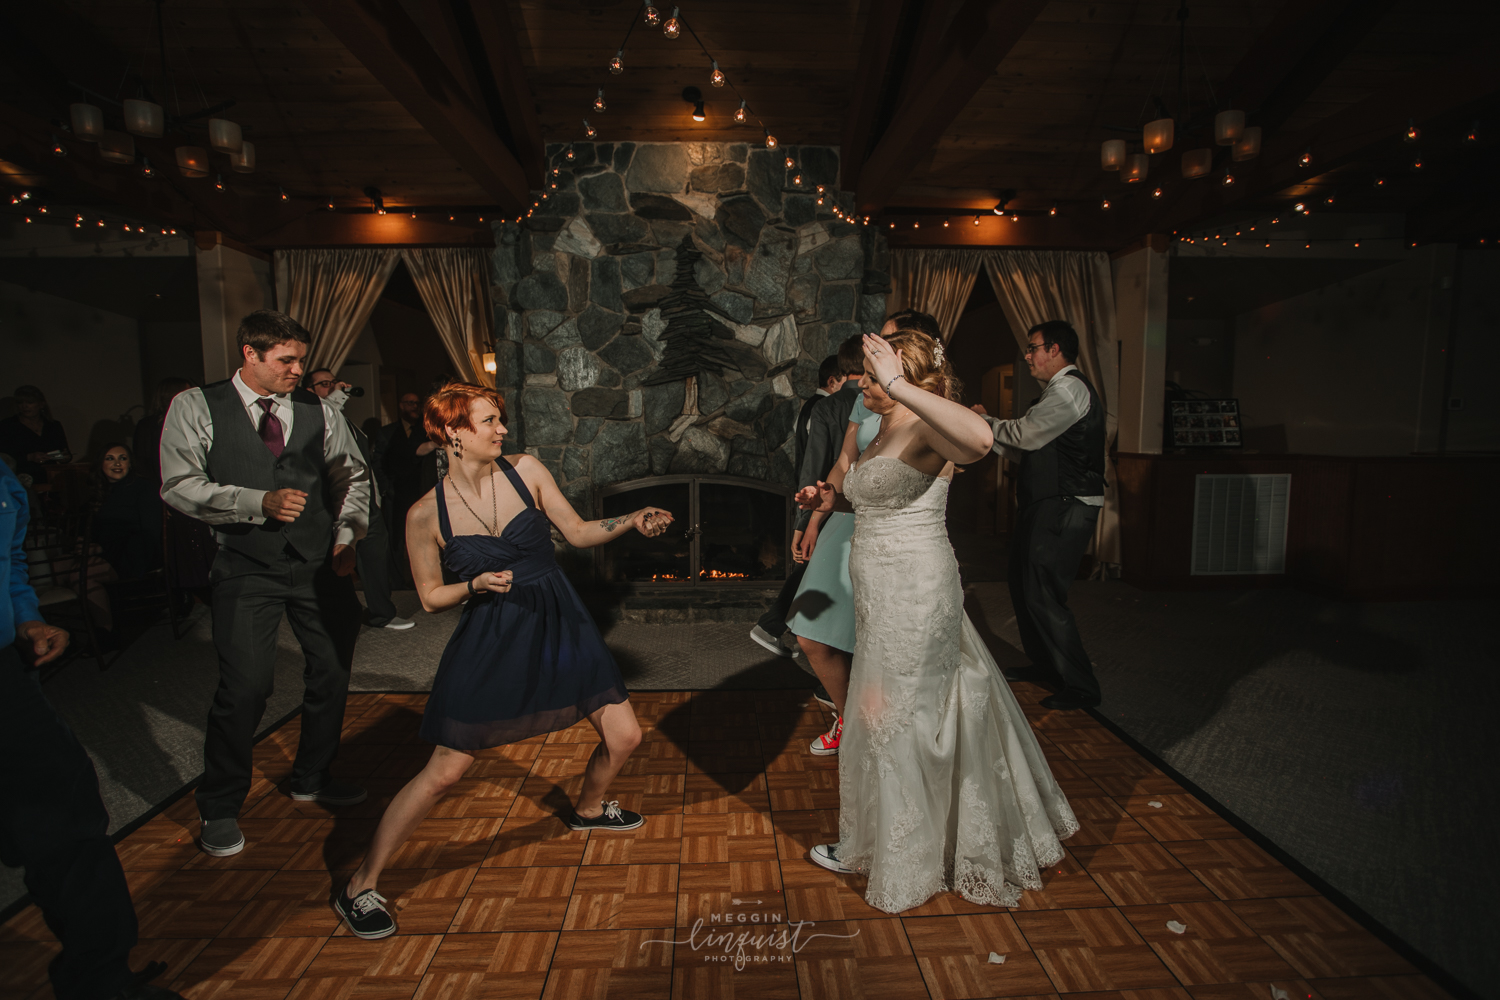 music-themed-winter-wedding-tannenbaum-event-center-reno-lake-tahoe-wedding-photographer-77.jpg